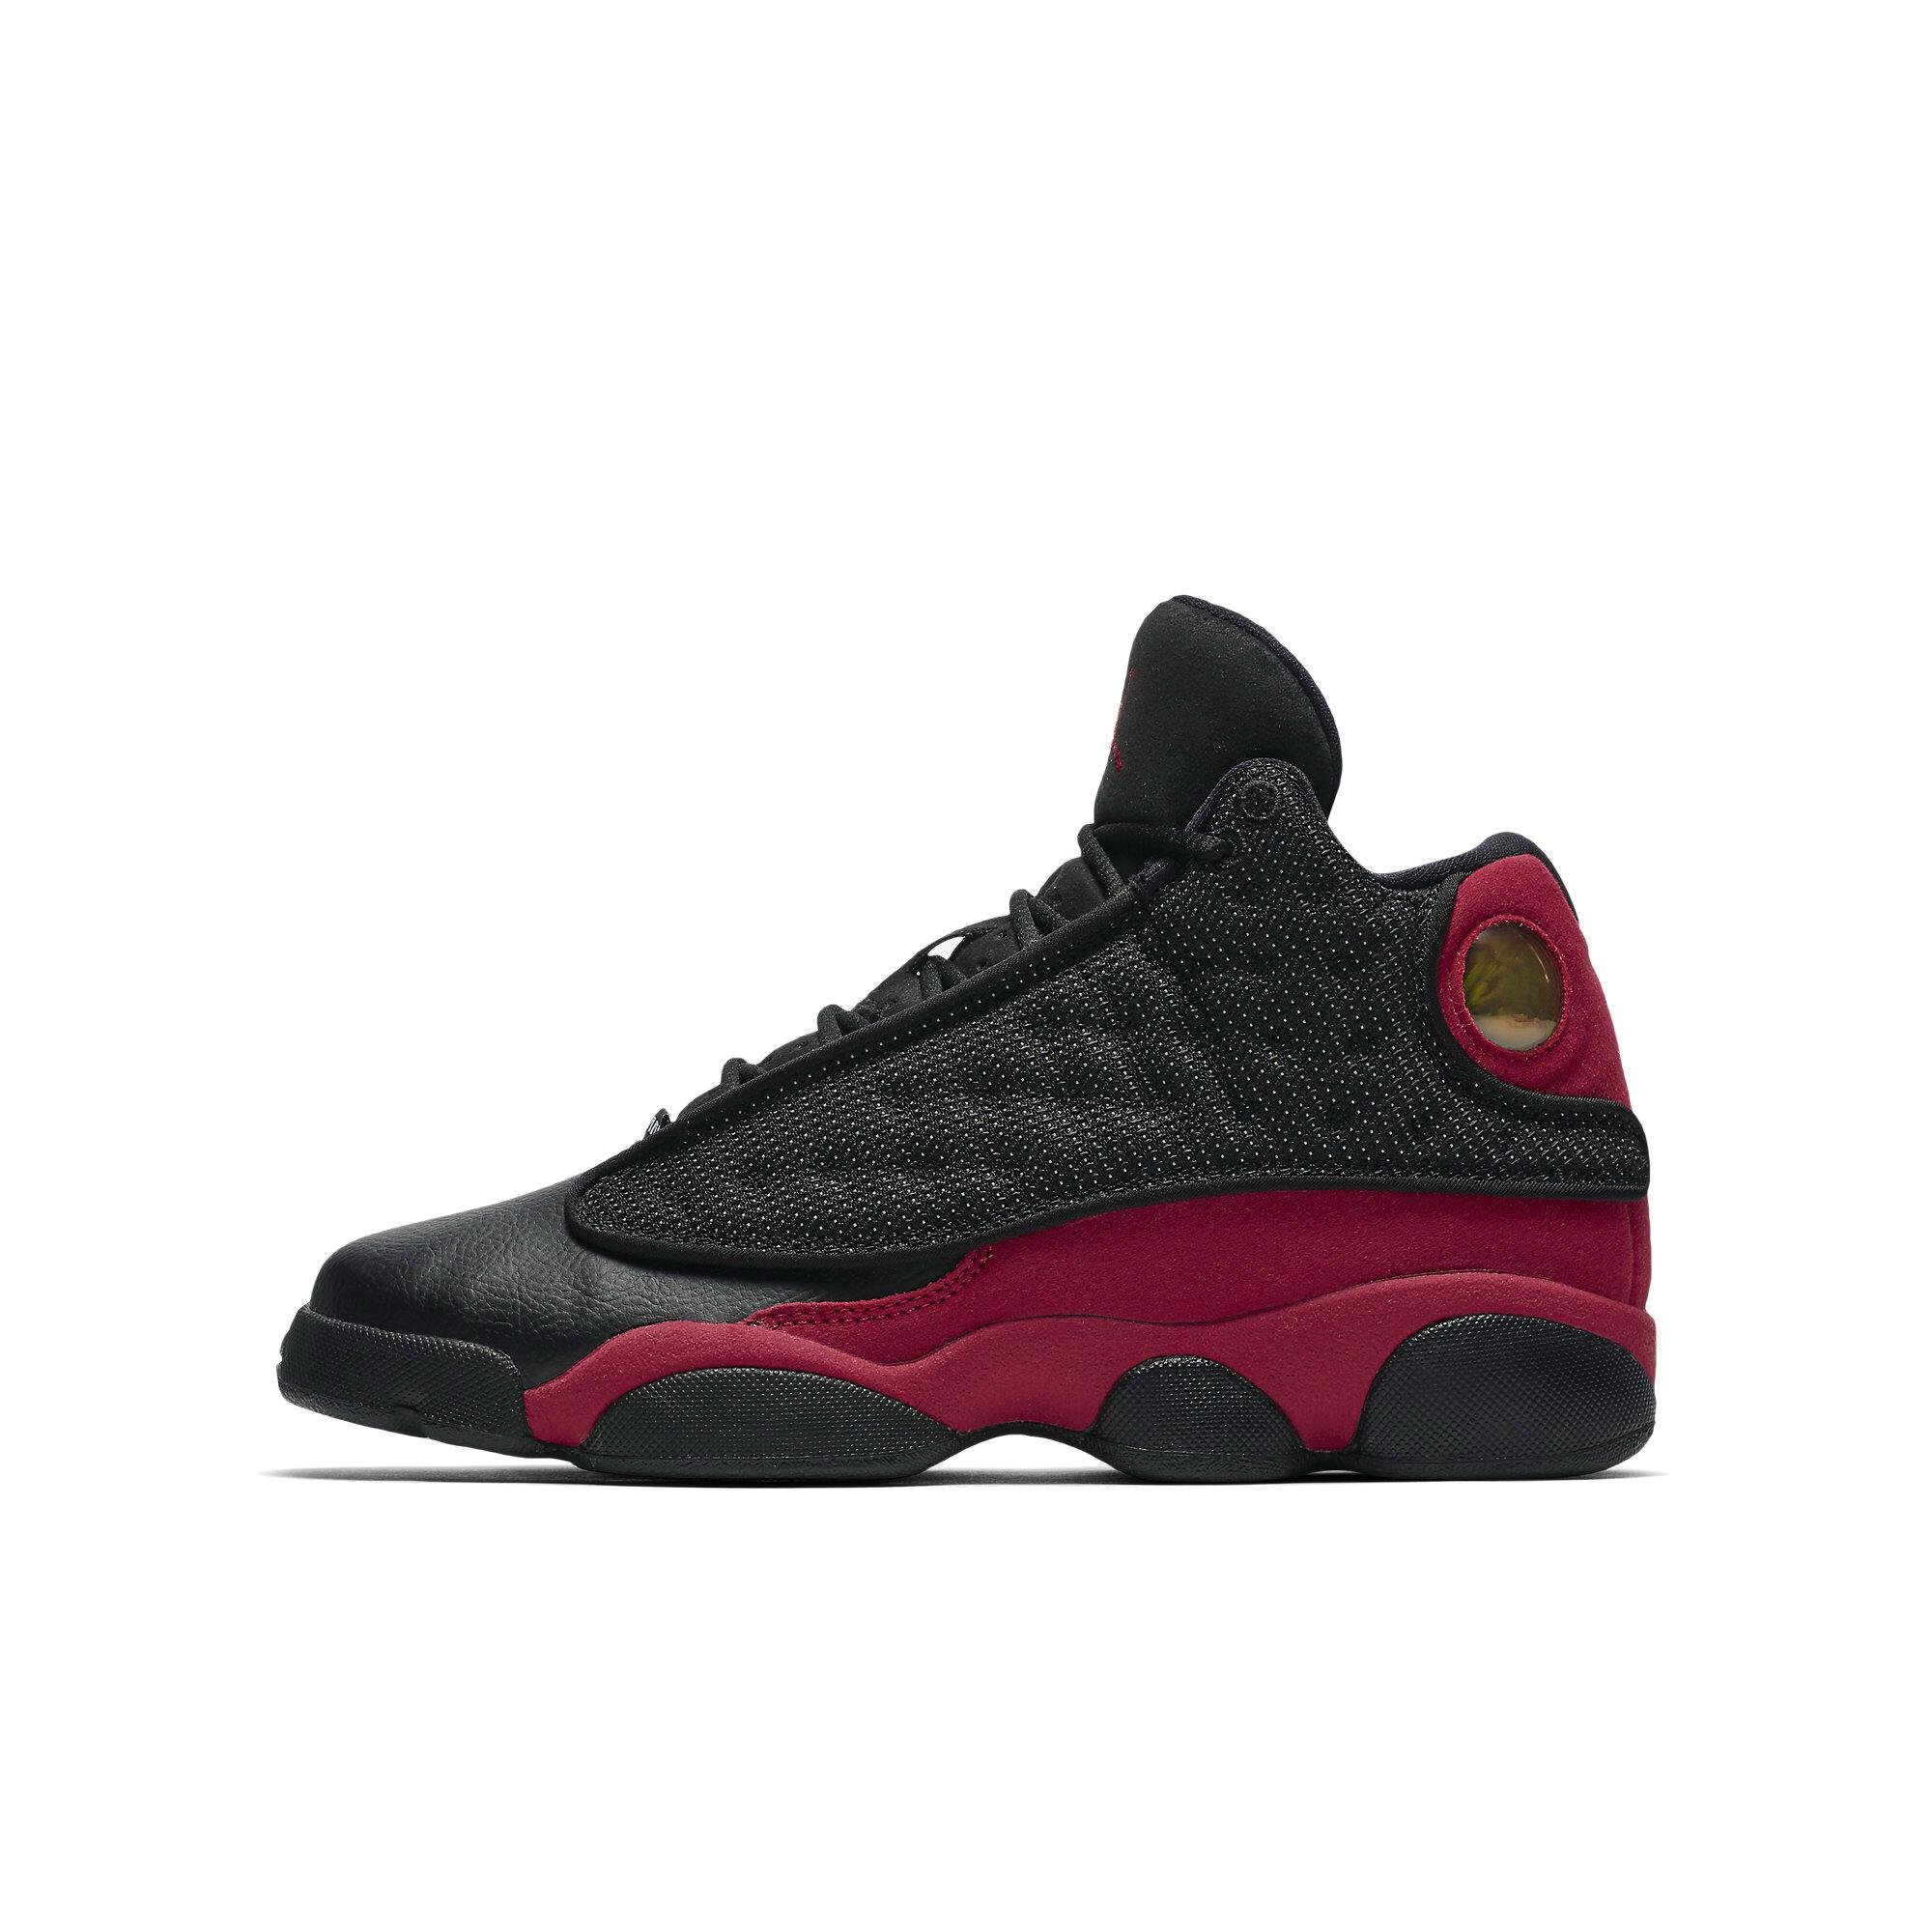 Jordan Retro 13 Bred Black/True Red-White (Big Kid) (6.5 M US Big Kid) by Jordan